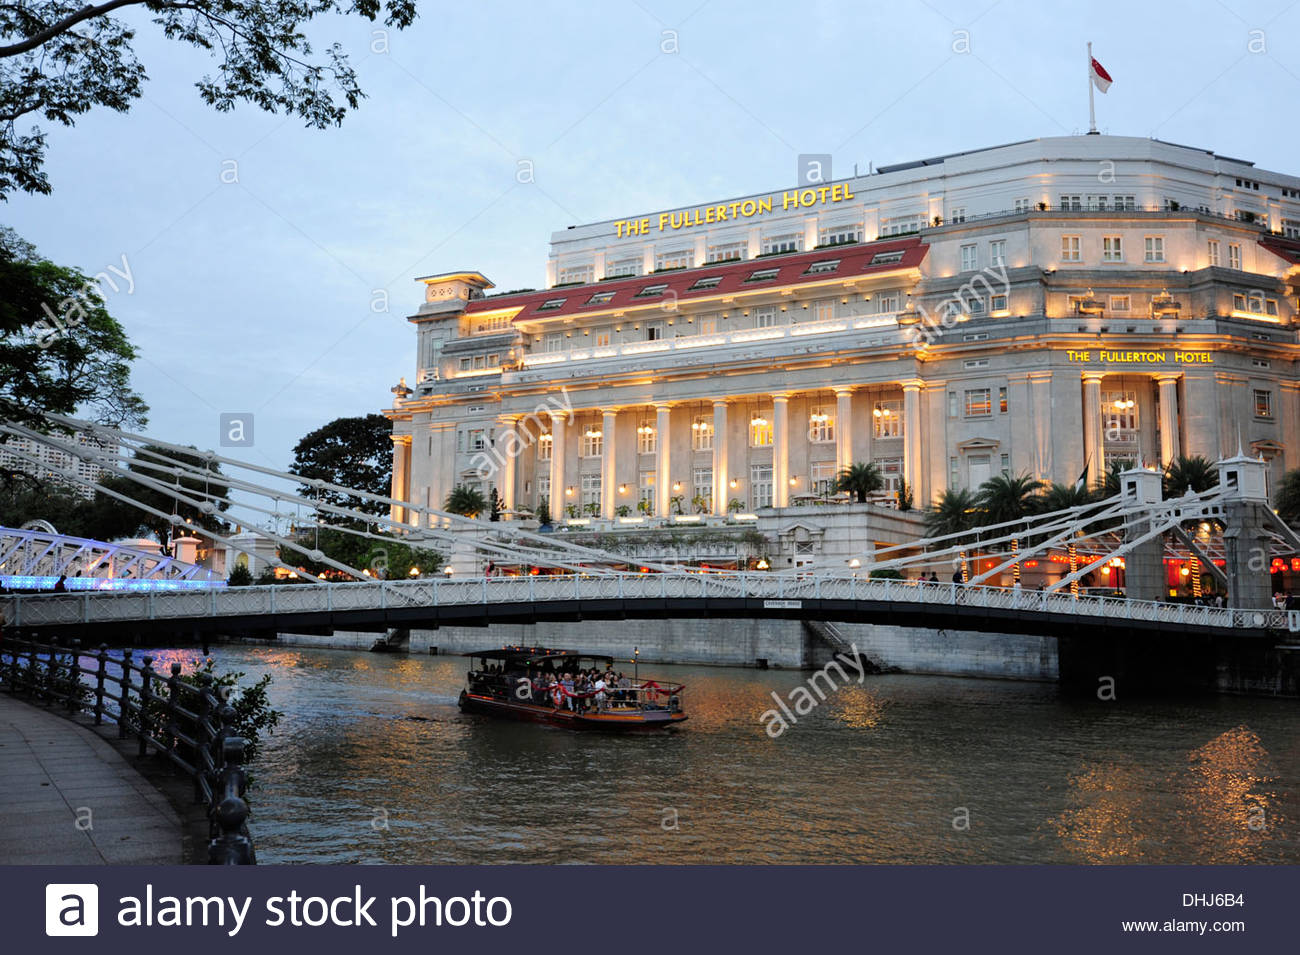 Cavenagh bridge crossing the Singapore River, in the background The Fullerton Hotel at dusk, Singapore, Asia - Stock Image